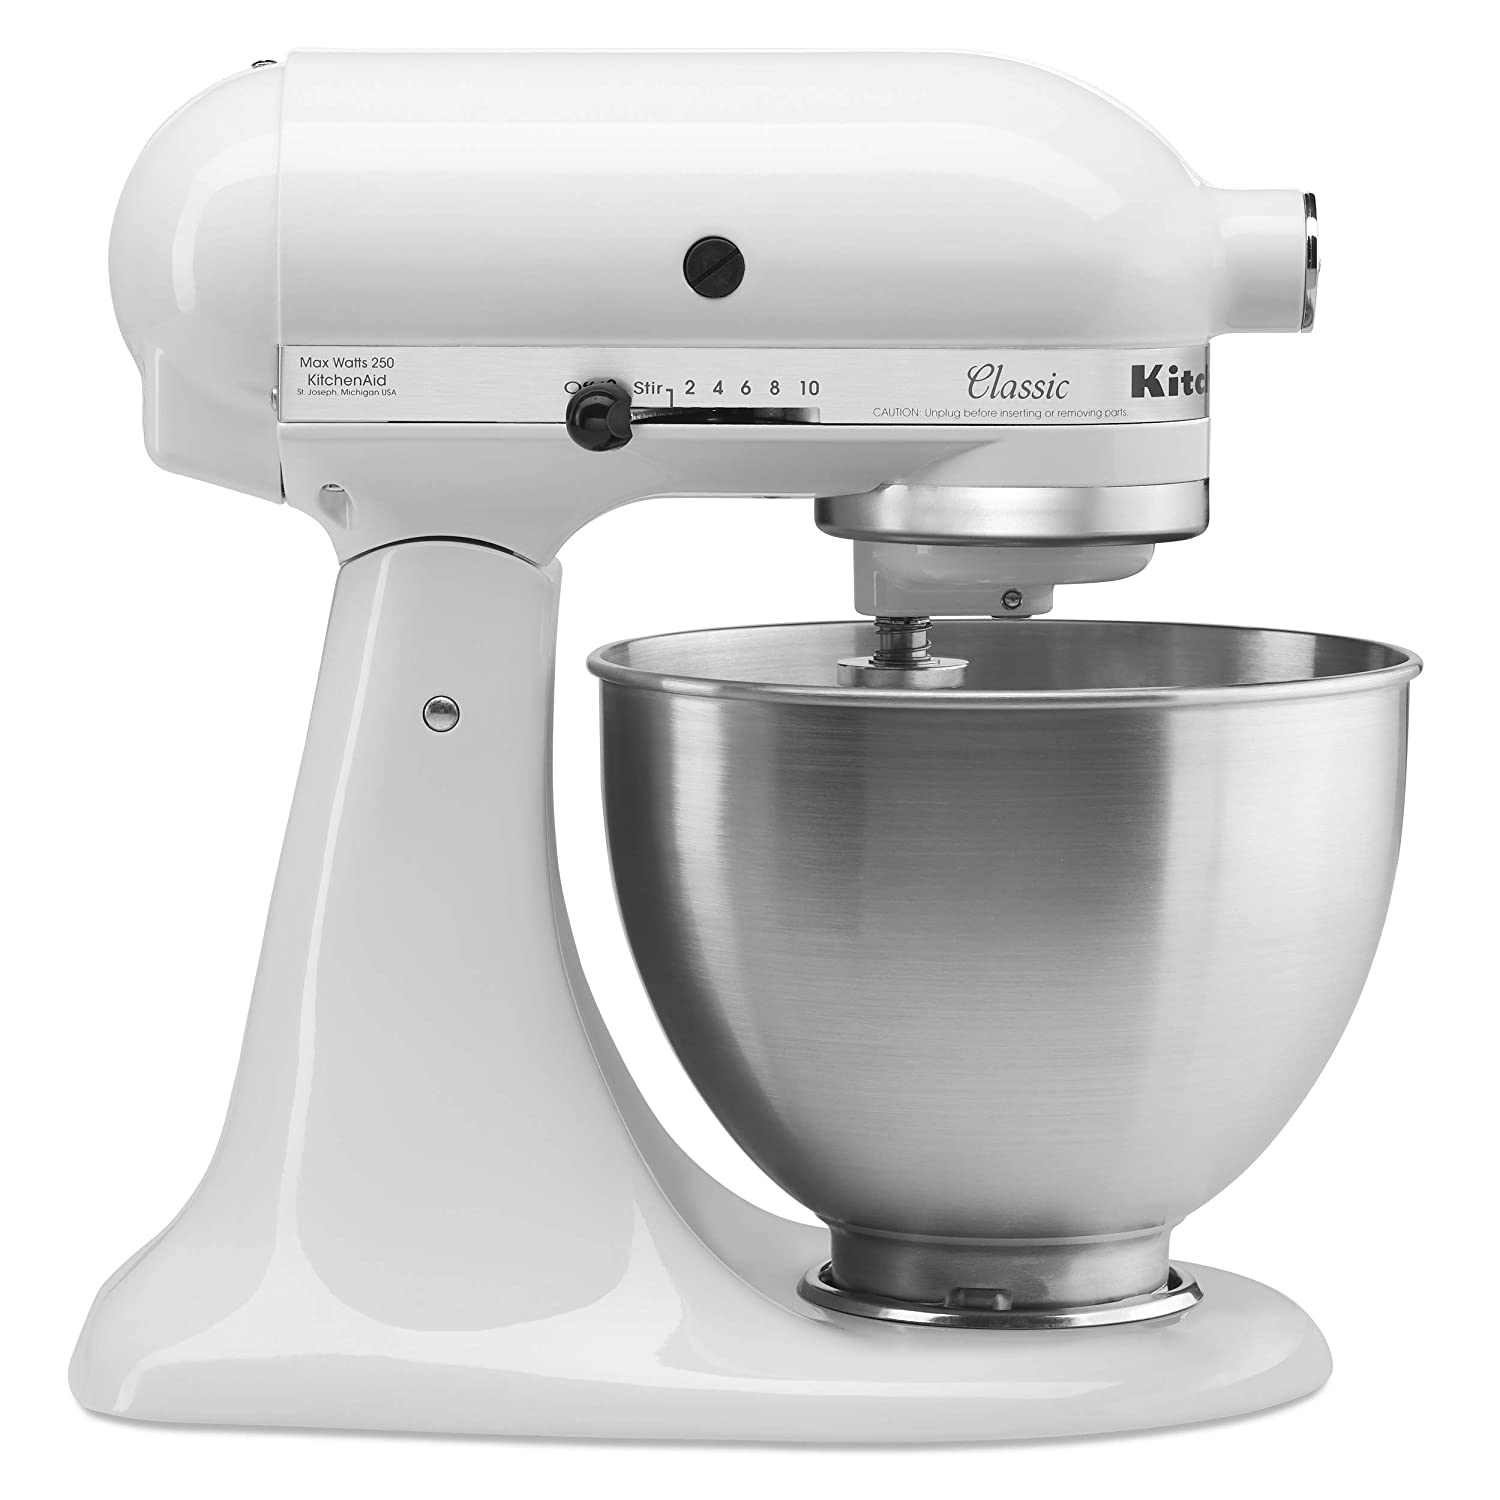 Top 8 Best Stand Mixers Reviews in 2020 You Can Consider 5